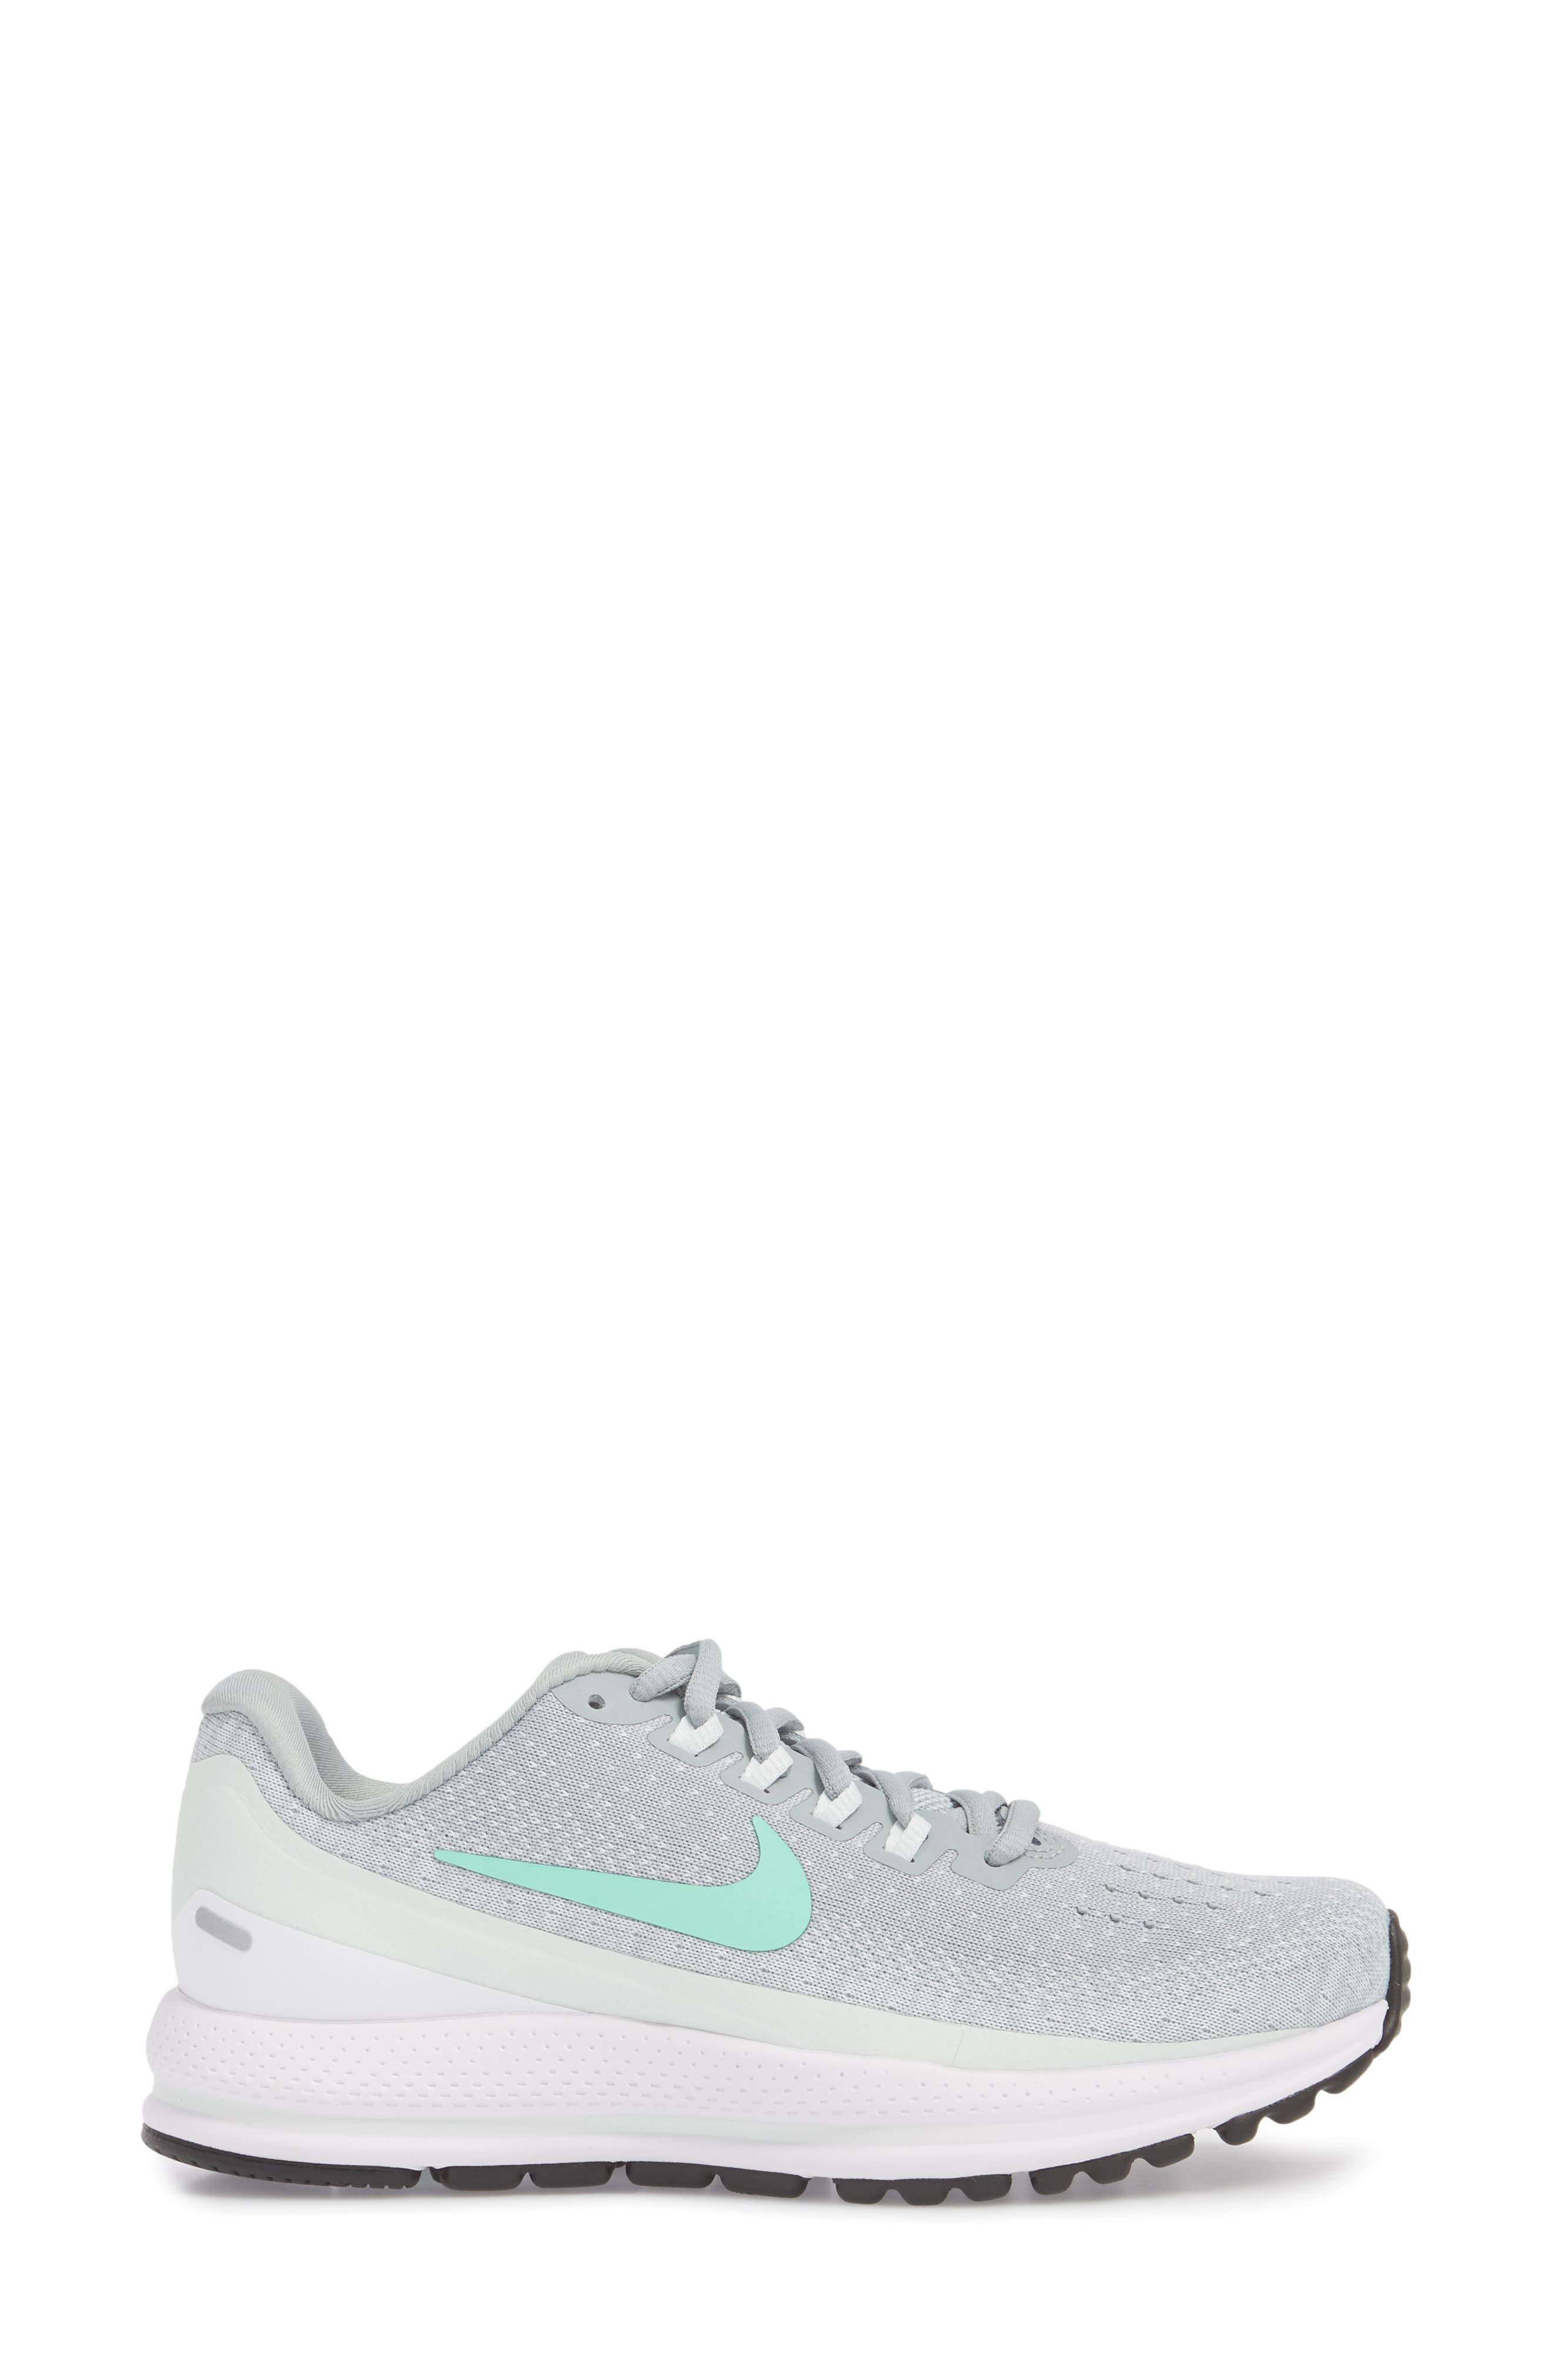 Air Zoom Vomero 13 Running Shoe,                             Alternate thumbnail 5, color,                             Light Pumice/ Green Glow